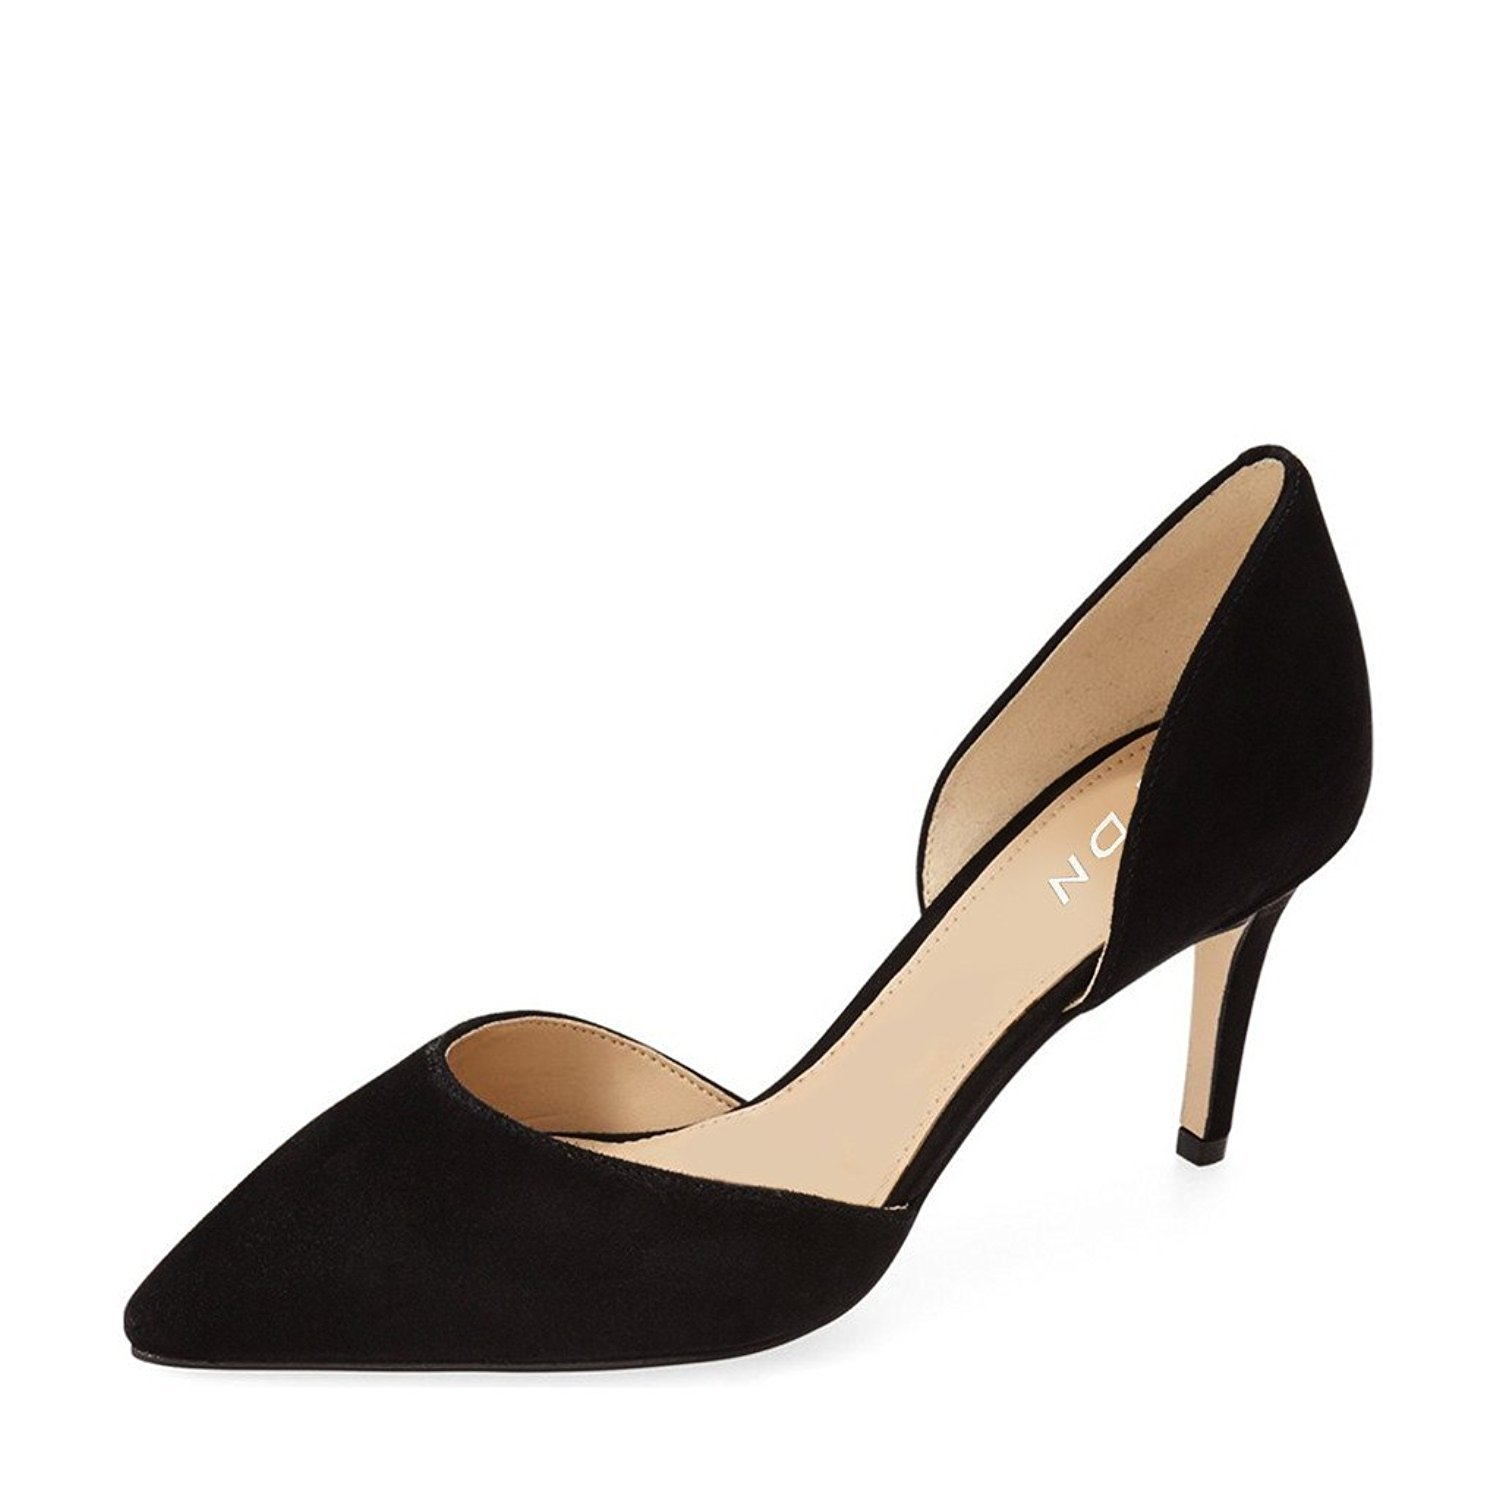 YDN Women Classic Low Heels D'Orsay Pumps Suede Pointed Toe Slip On Dressy Stilettos Shoes 8.5 (Black)